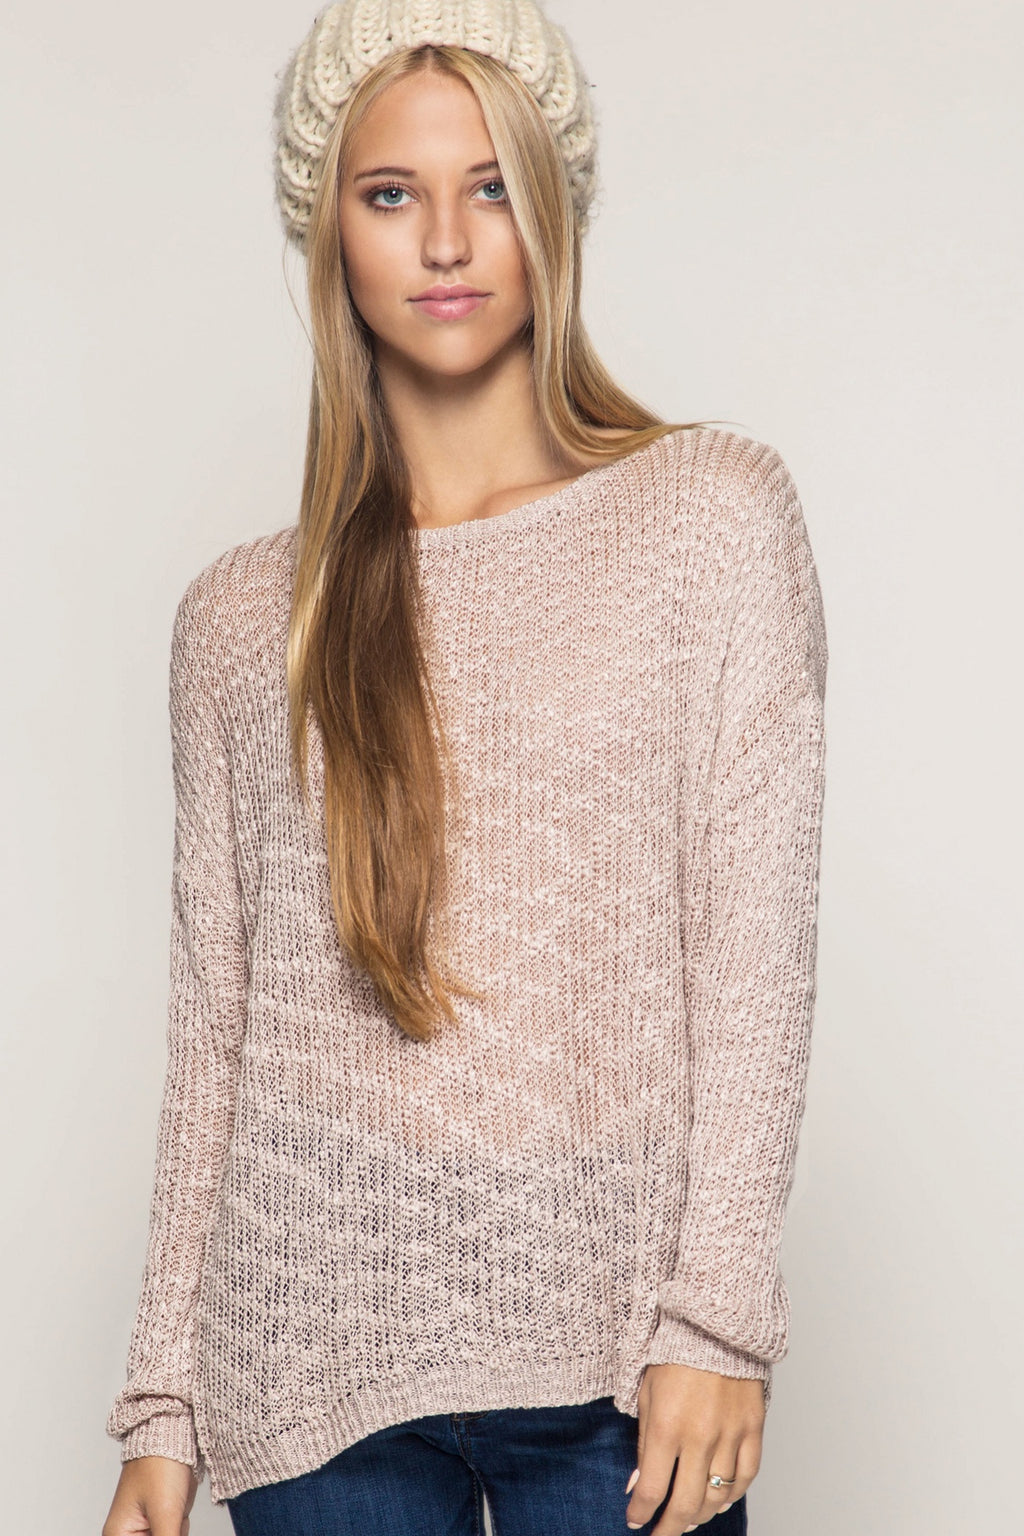 Taupe Slub Yarn Sweater